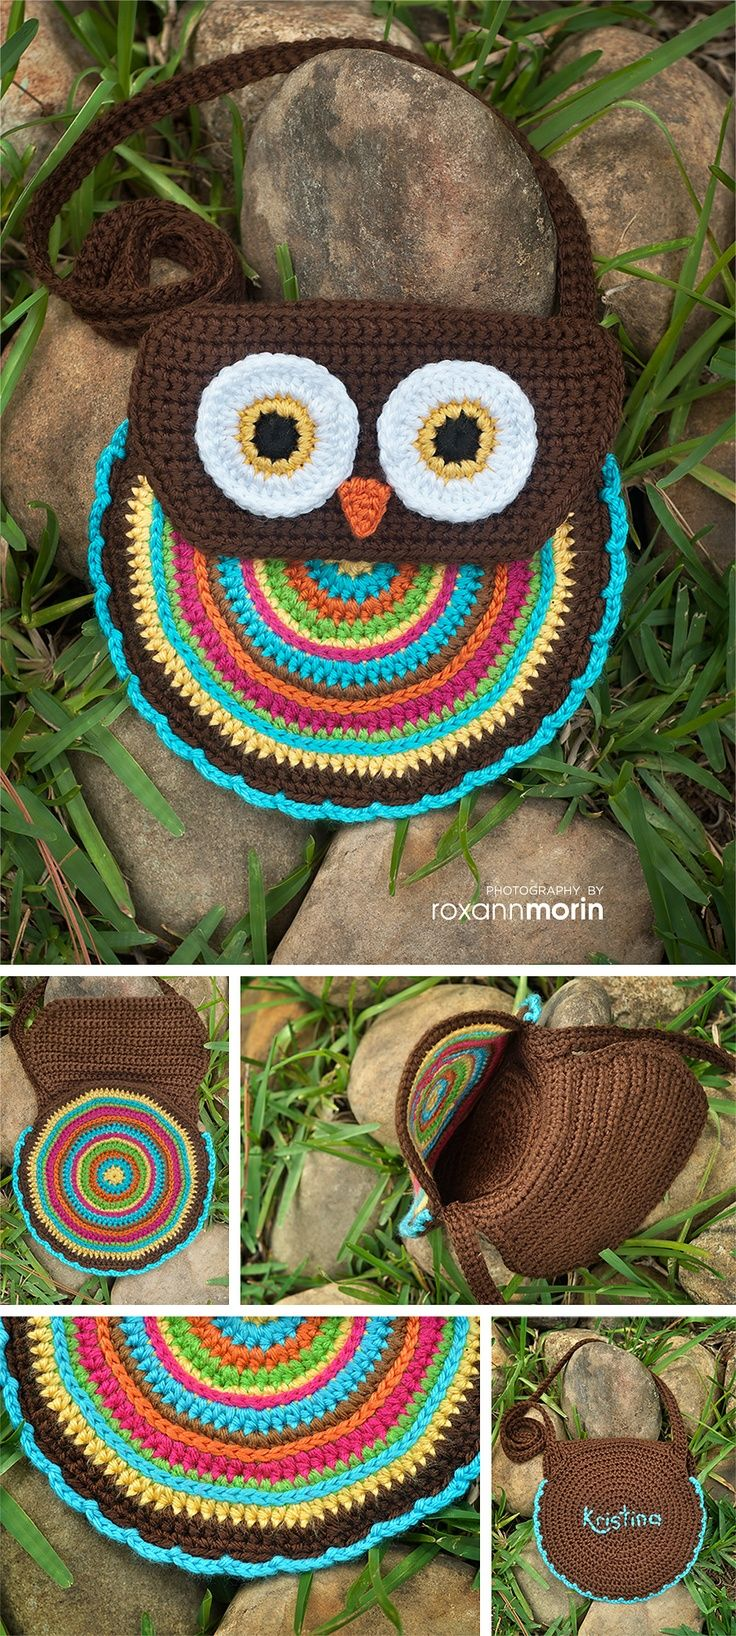 Pin by kelly sugden on need something to do pinterest explore crochet owl purse crochet purses and more bankloansurffo Image collections